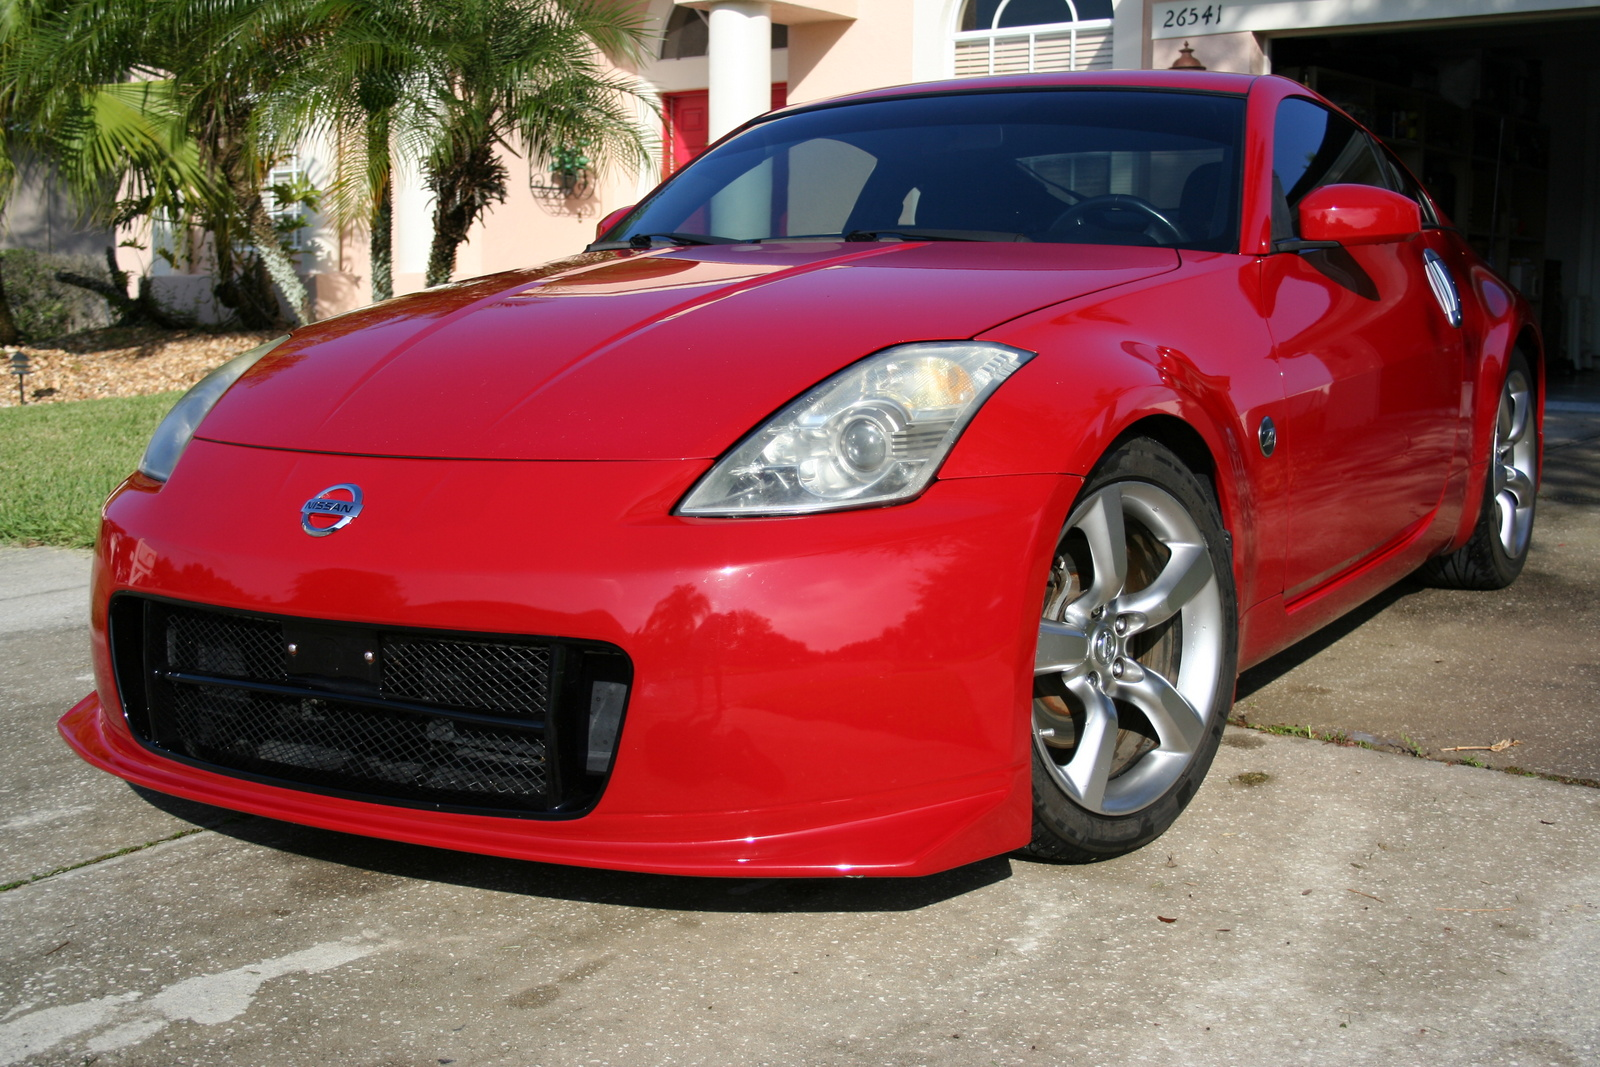 Nissan 350 z pictures 2005 Nissan 350Z Reviews and Rating Motor Trend